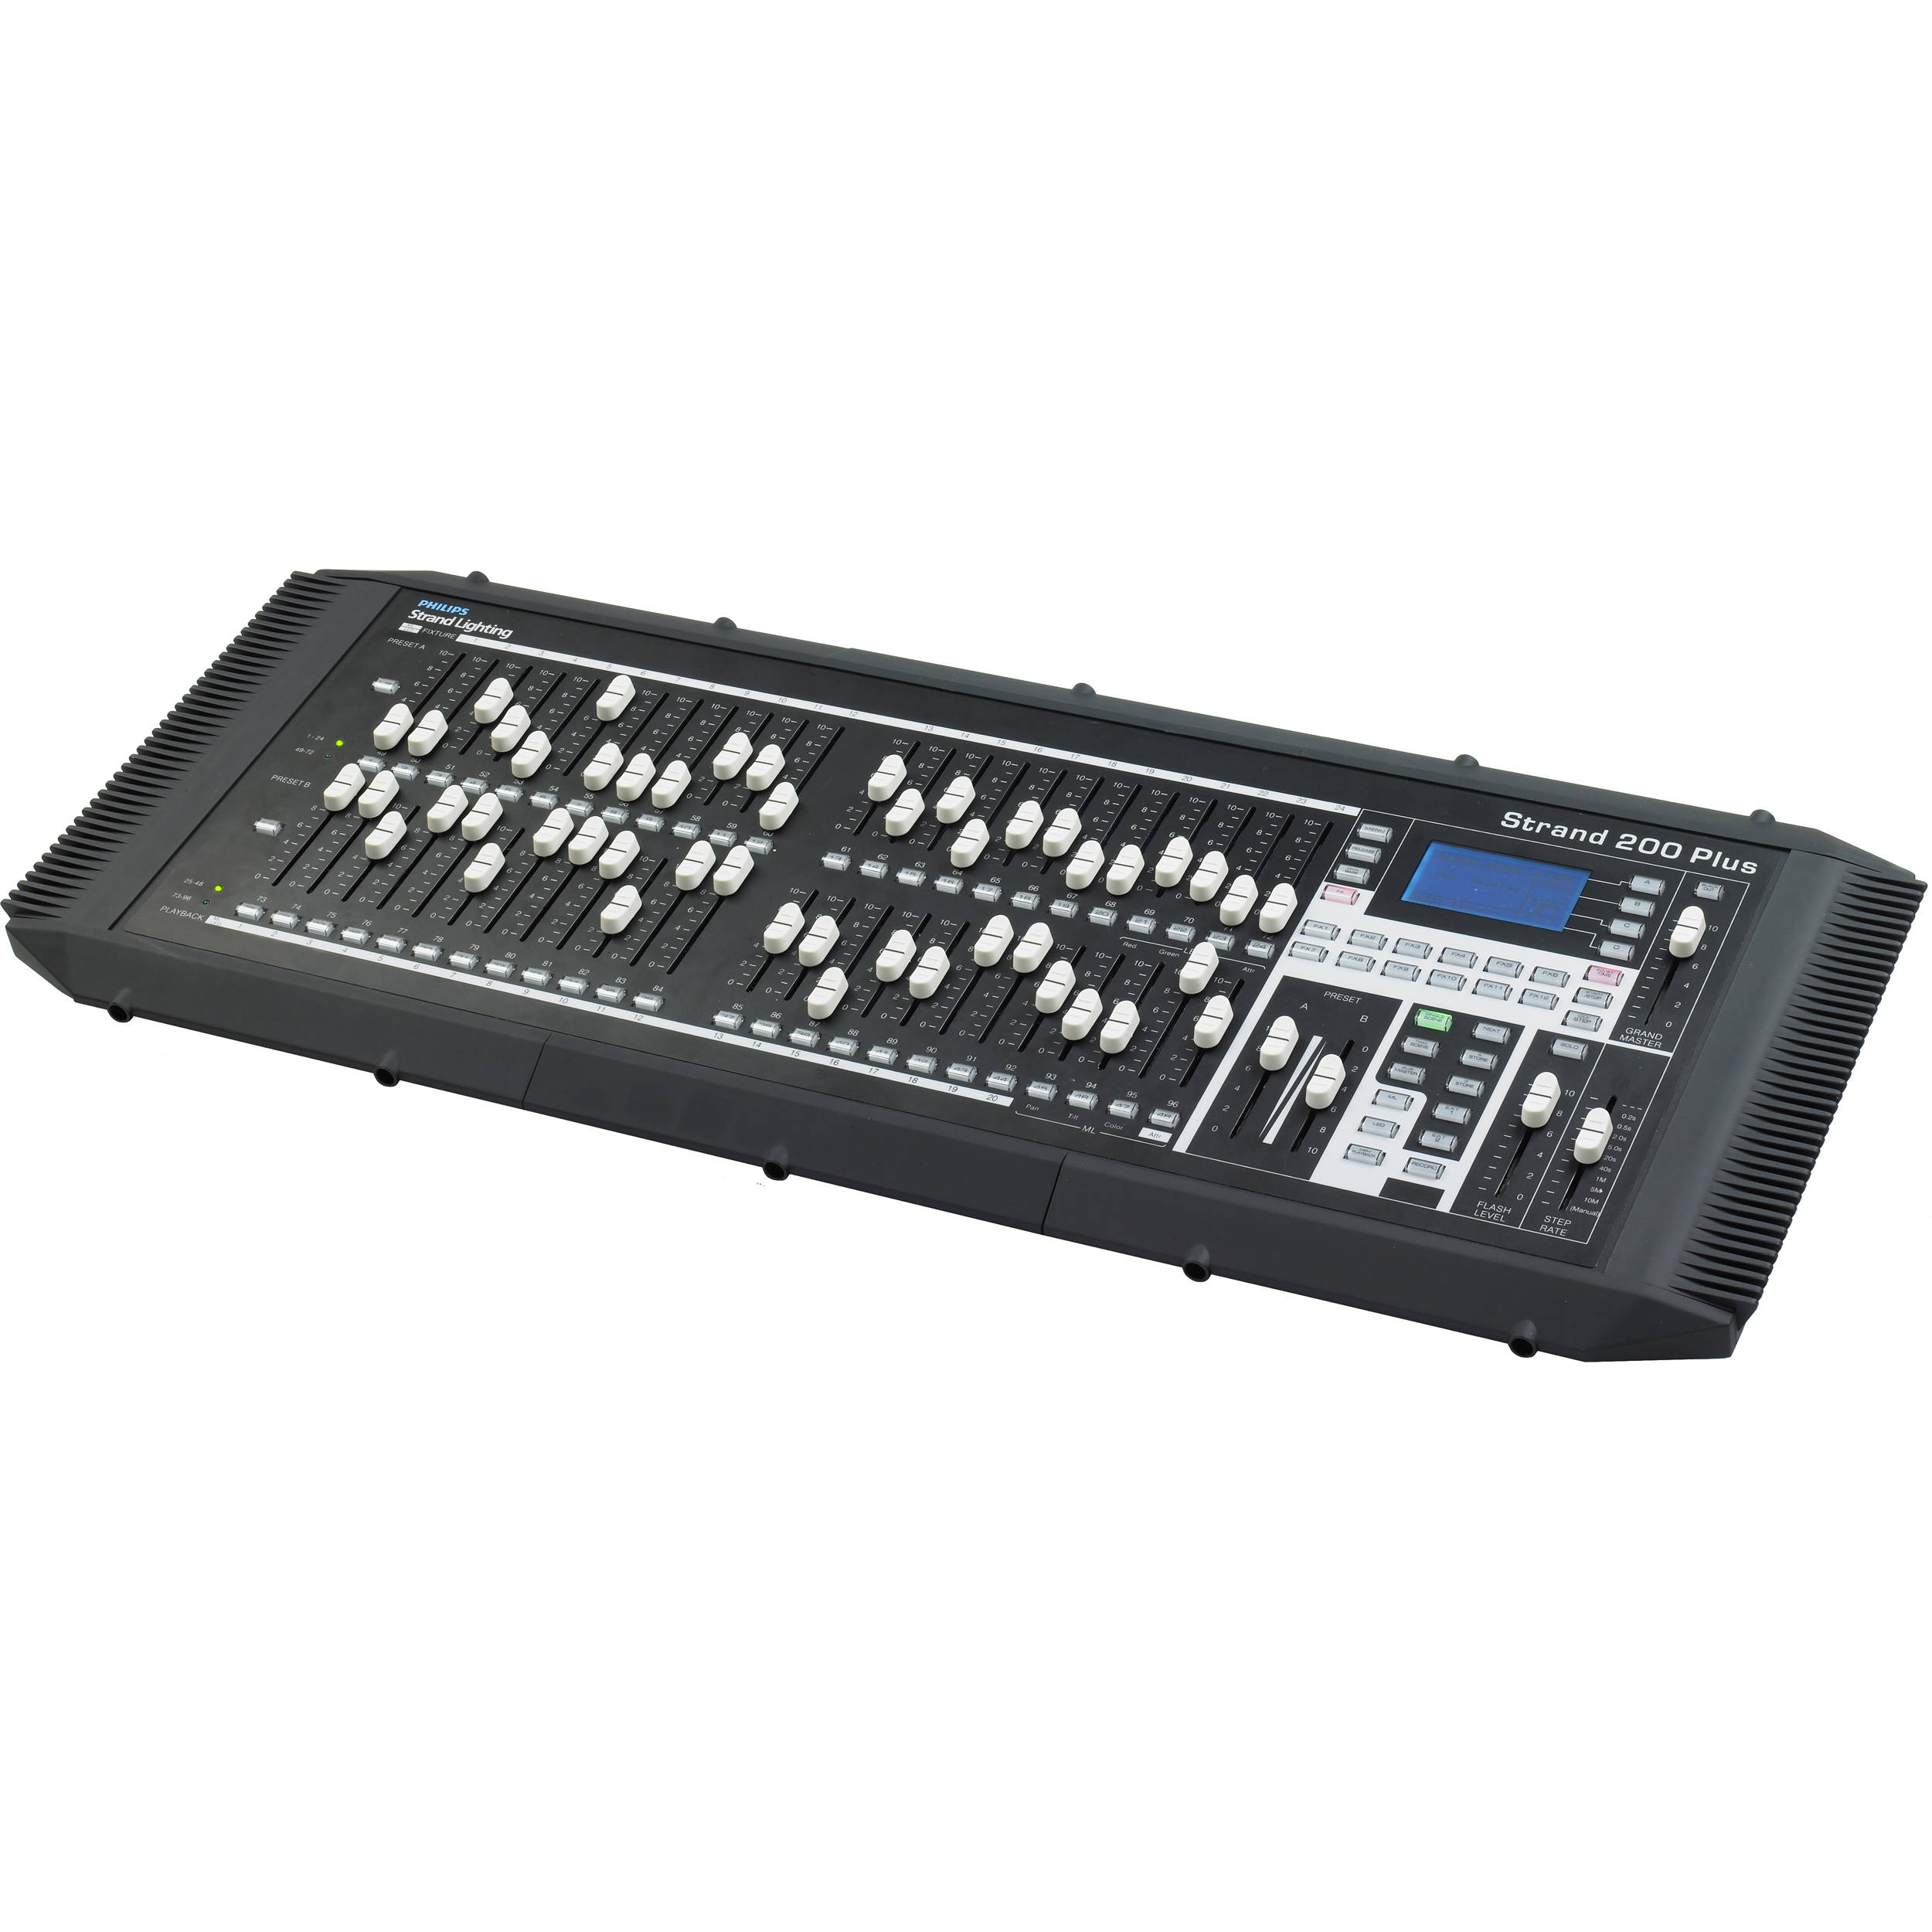 Strand Lighting 200 Plus Series 24 48 Portable Console With Supply